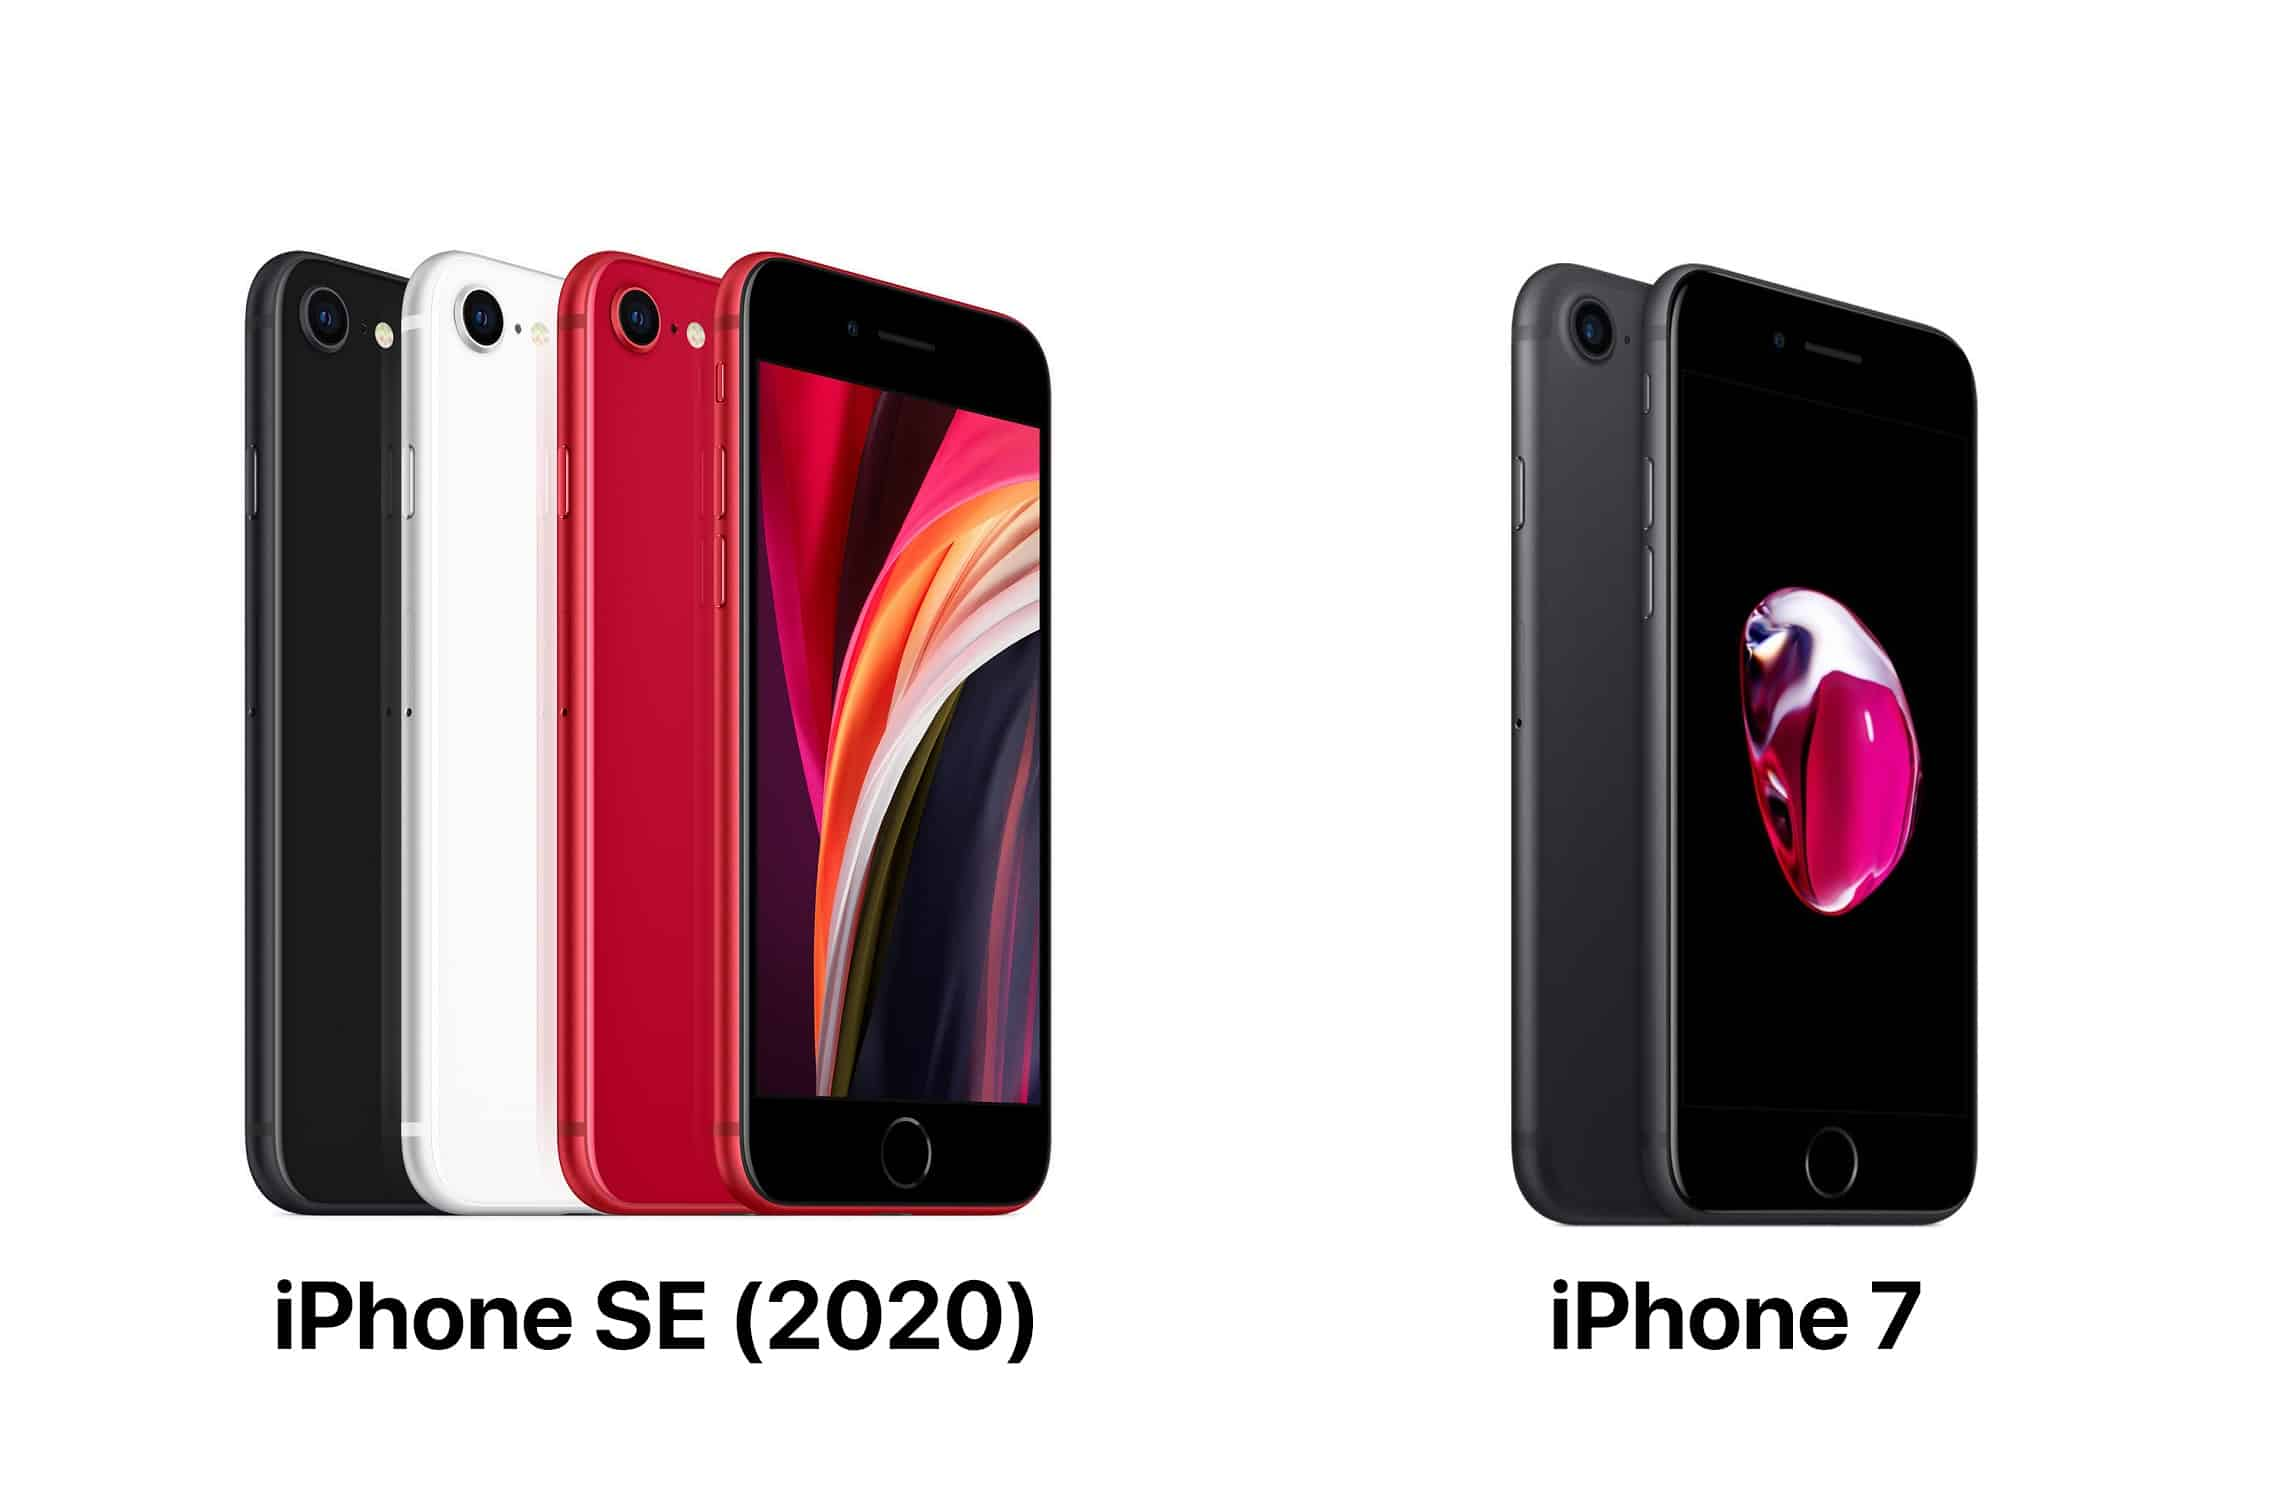 Should I change iPhone 7 to iPhone SE 2020?